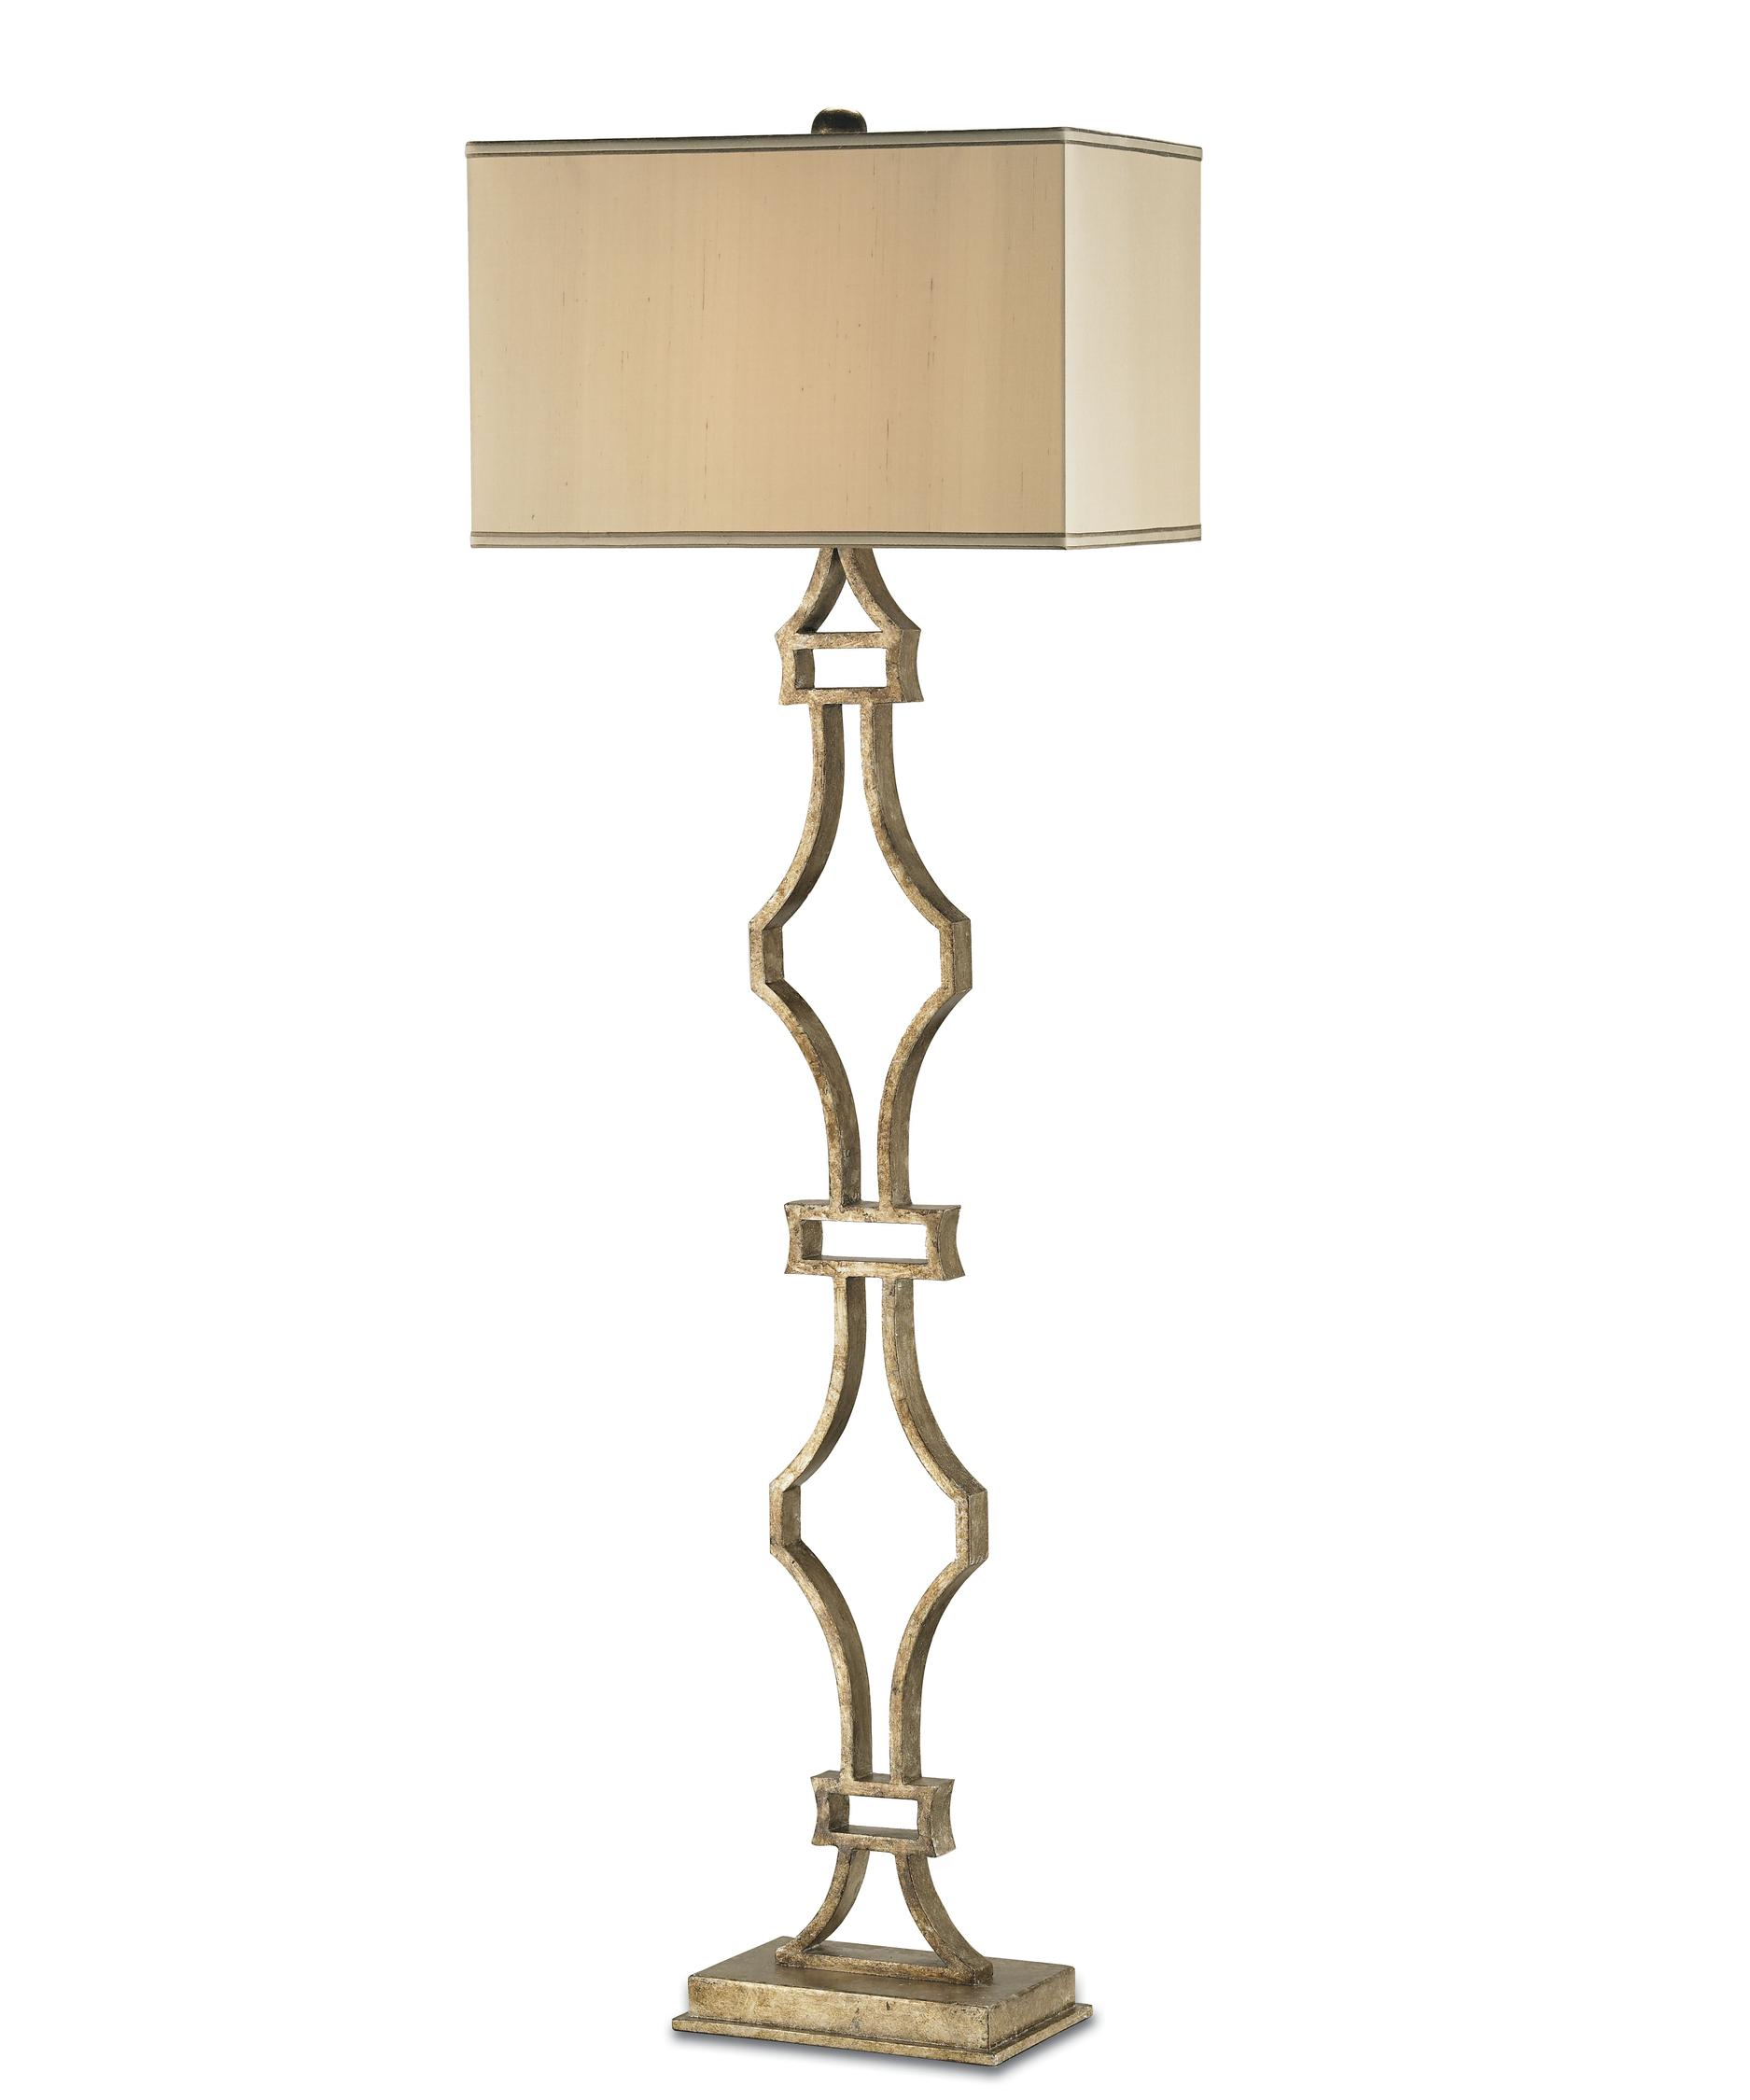 Traditional floor lamp - Shown In Antique Silver Leaf Finish And Champagne Silk Shade